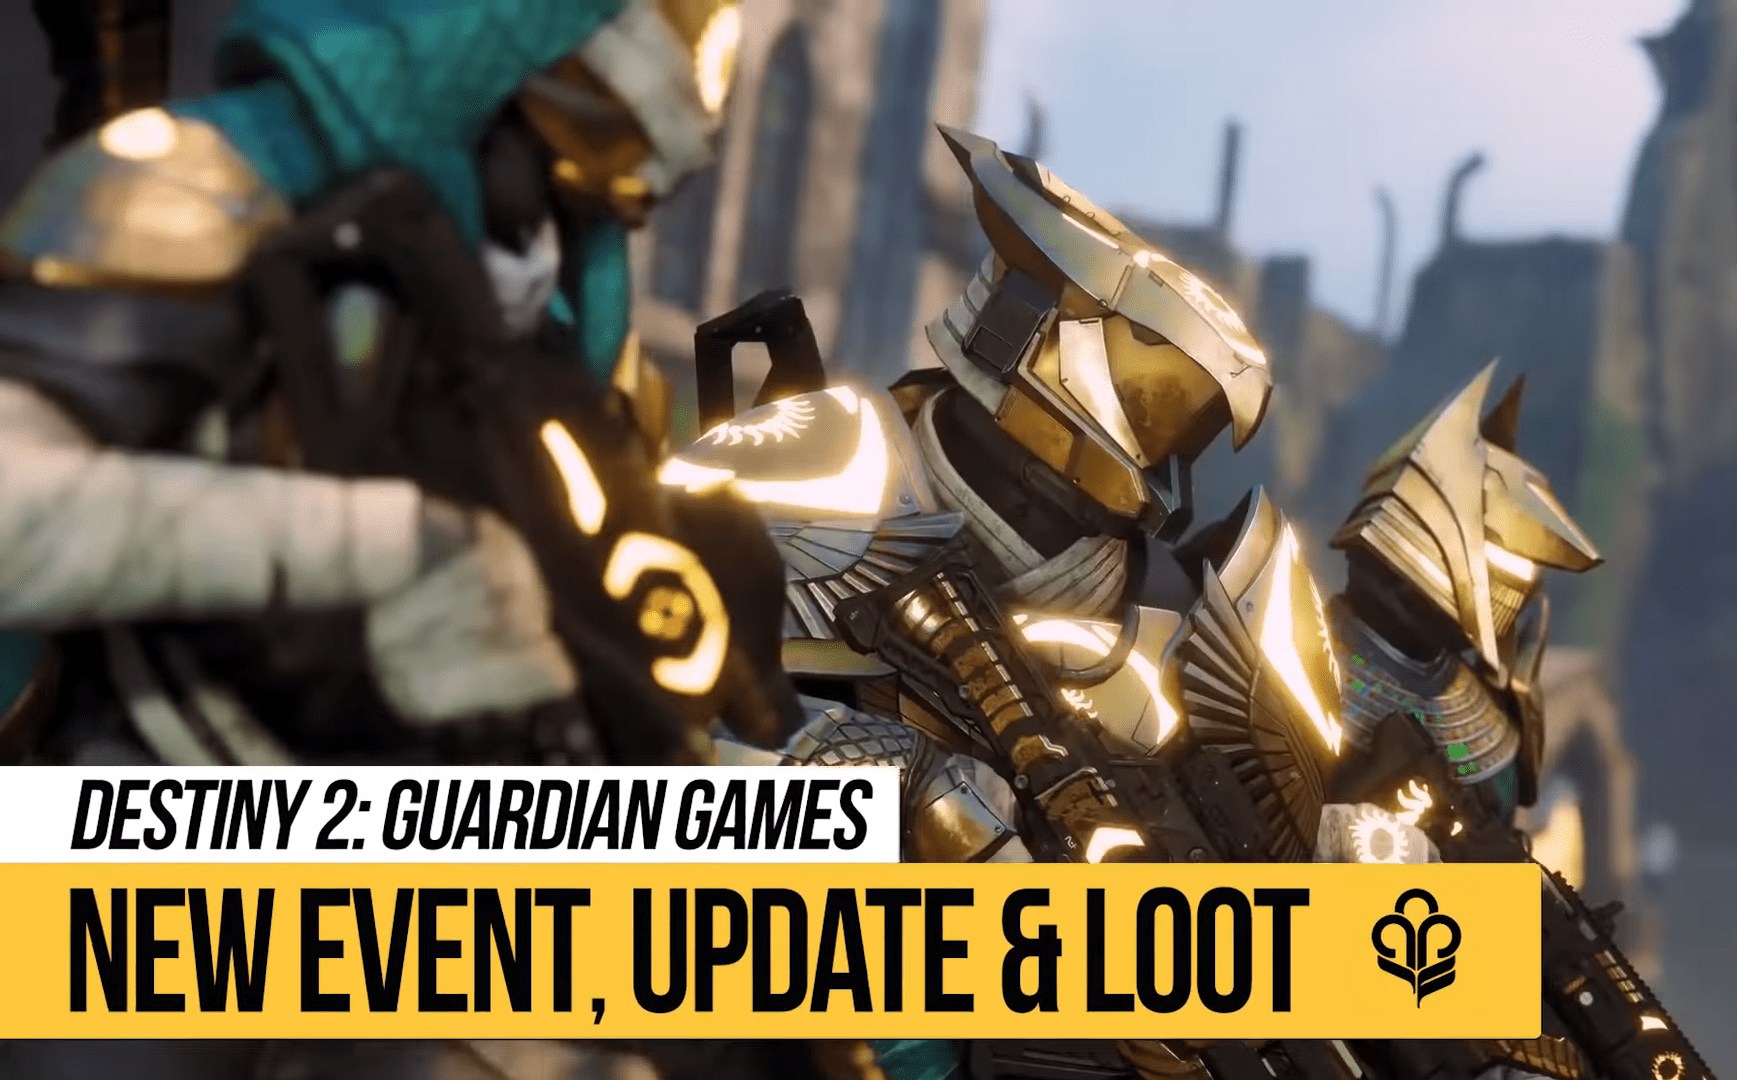 Destiny 2 Weekly Reset on April 21st Features The Beginning Of The Guardian Games Event